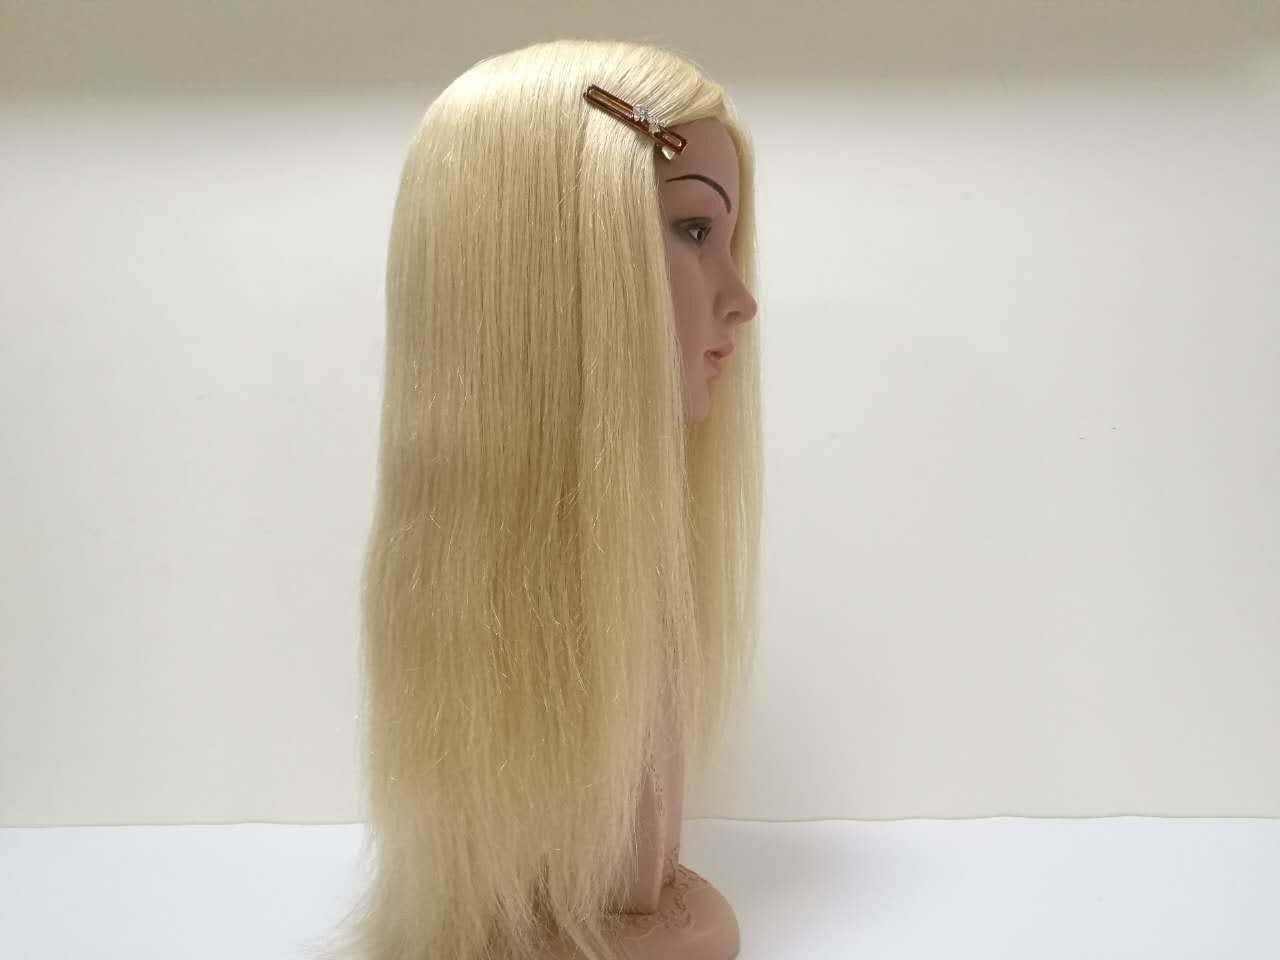 Blond All Hand Crafted Lace With Poly Women's Custom Hair Wig Manufacturers, Blond All Hand Crafted Lace With Poly Women's Custom Hair Wig Factory, Supply Blond All Hand Crafted Lace With Poly Women's Custom Hair Wig